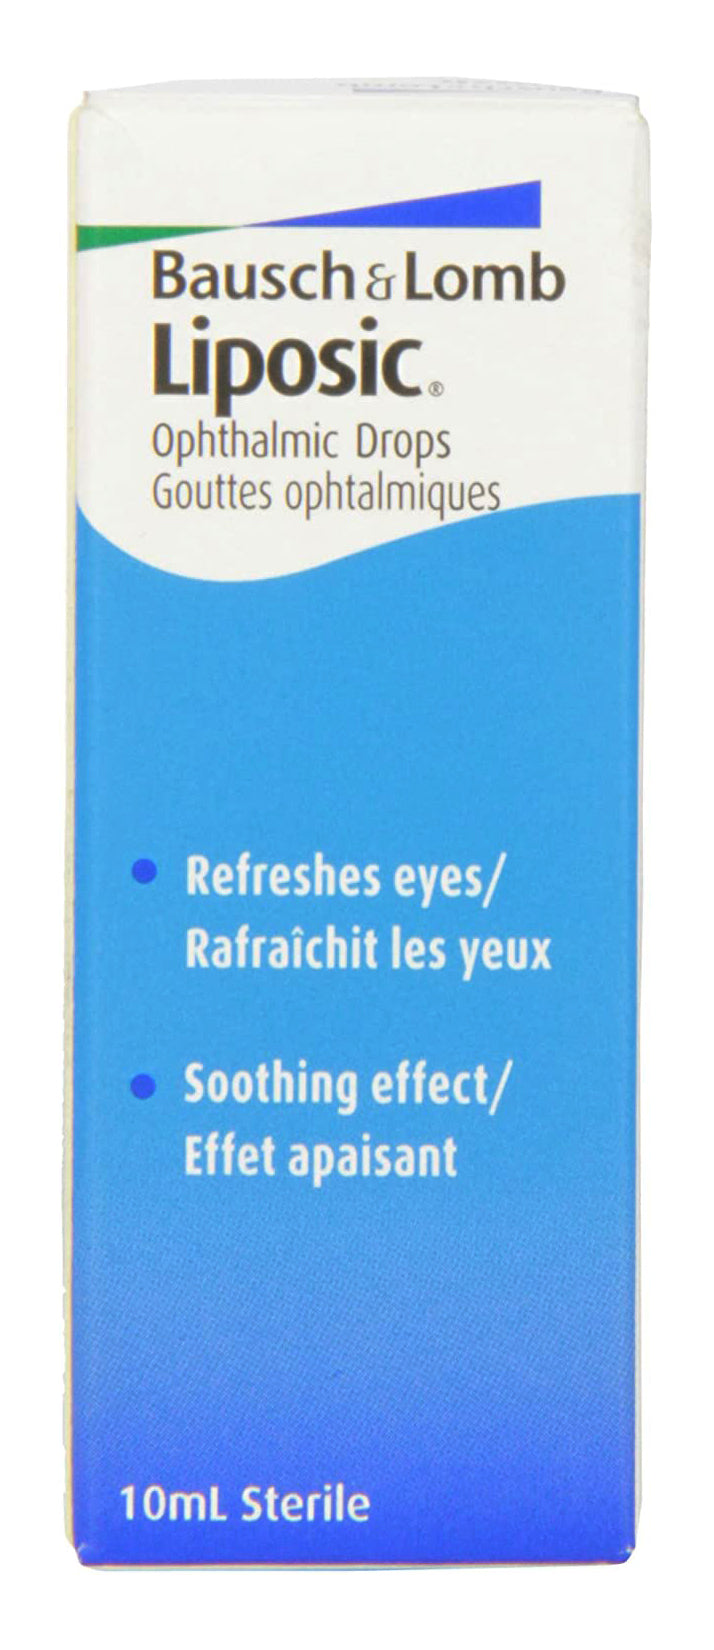 Liposic Bausch & Lomb Ophthalmic Eye Drops 10ml (.34oz)